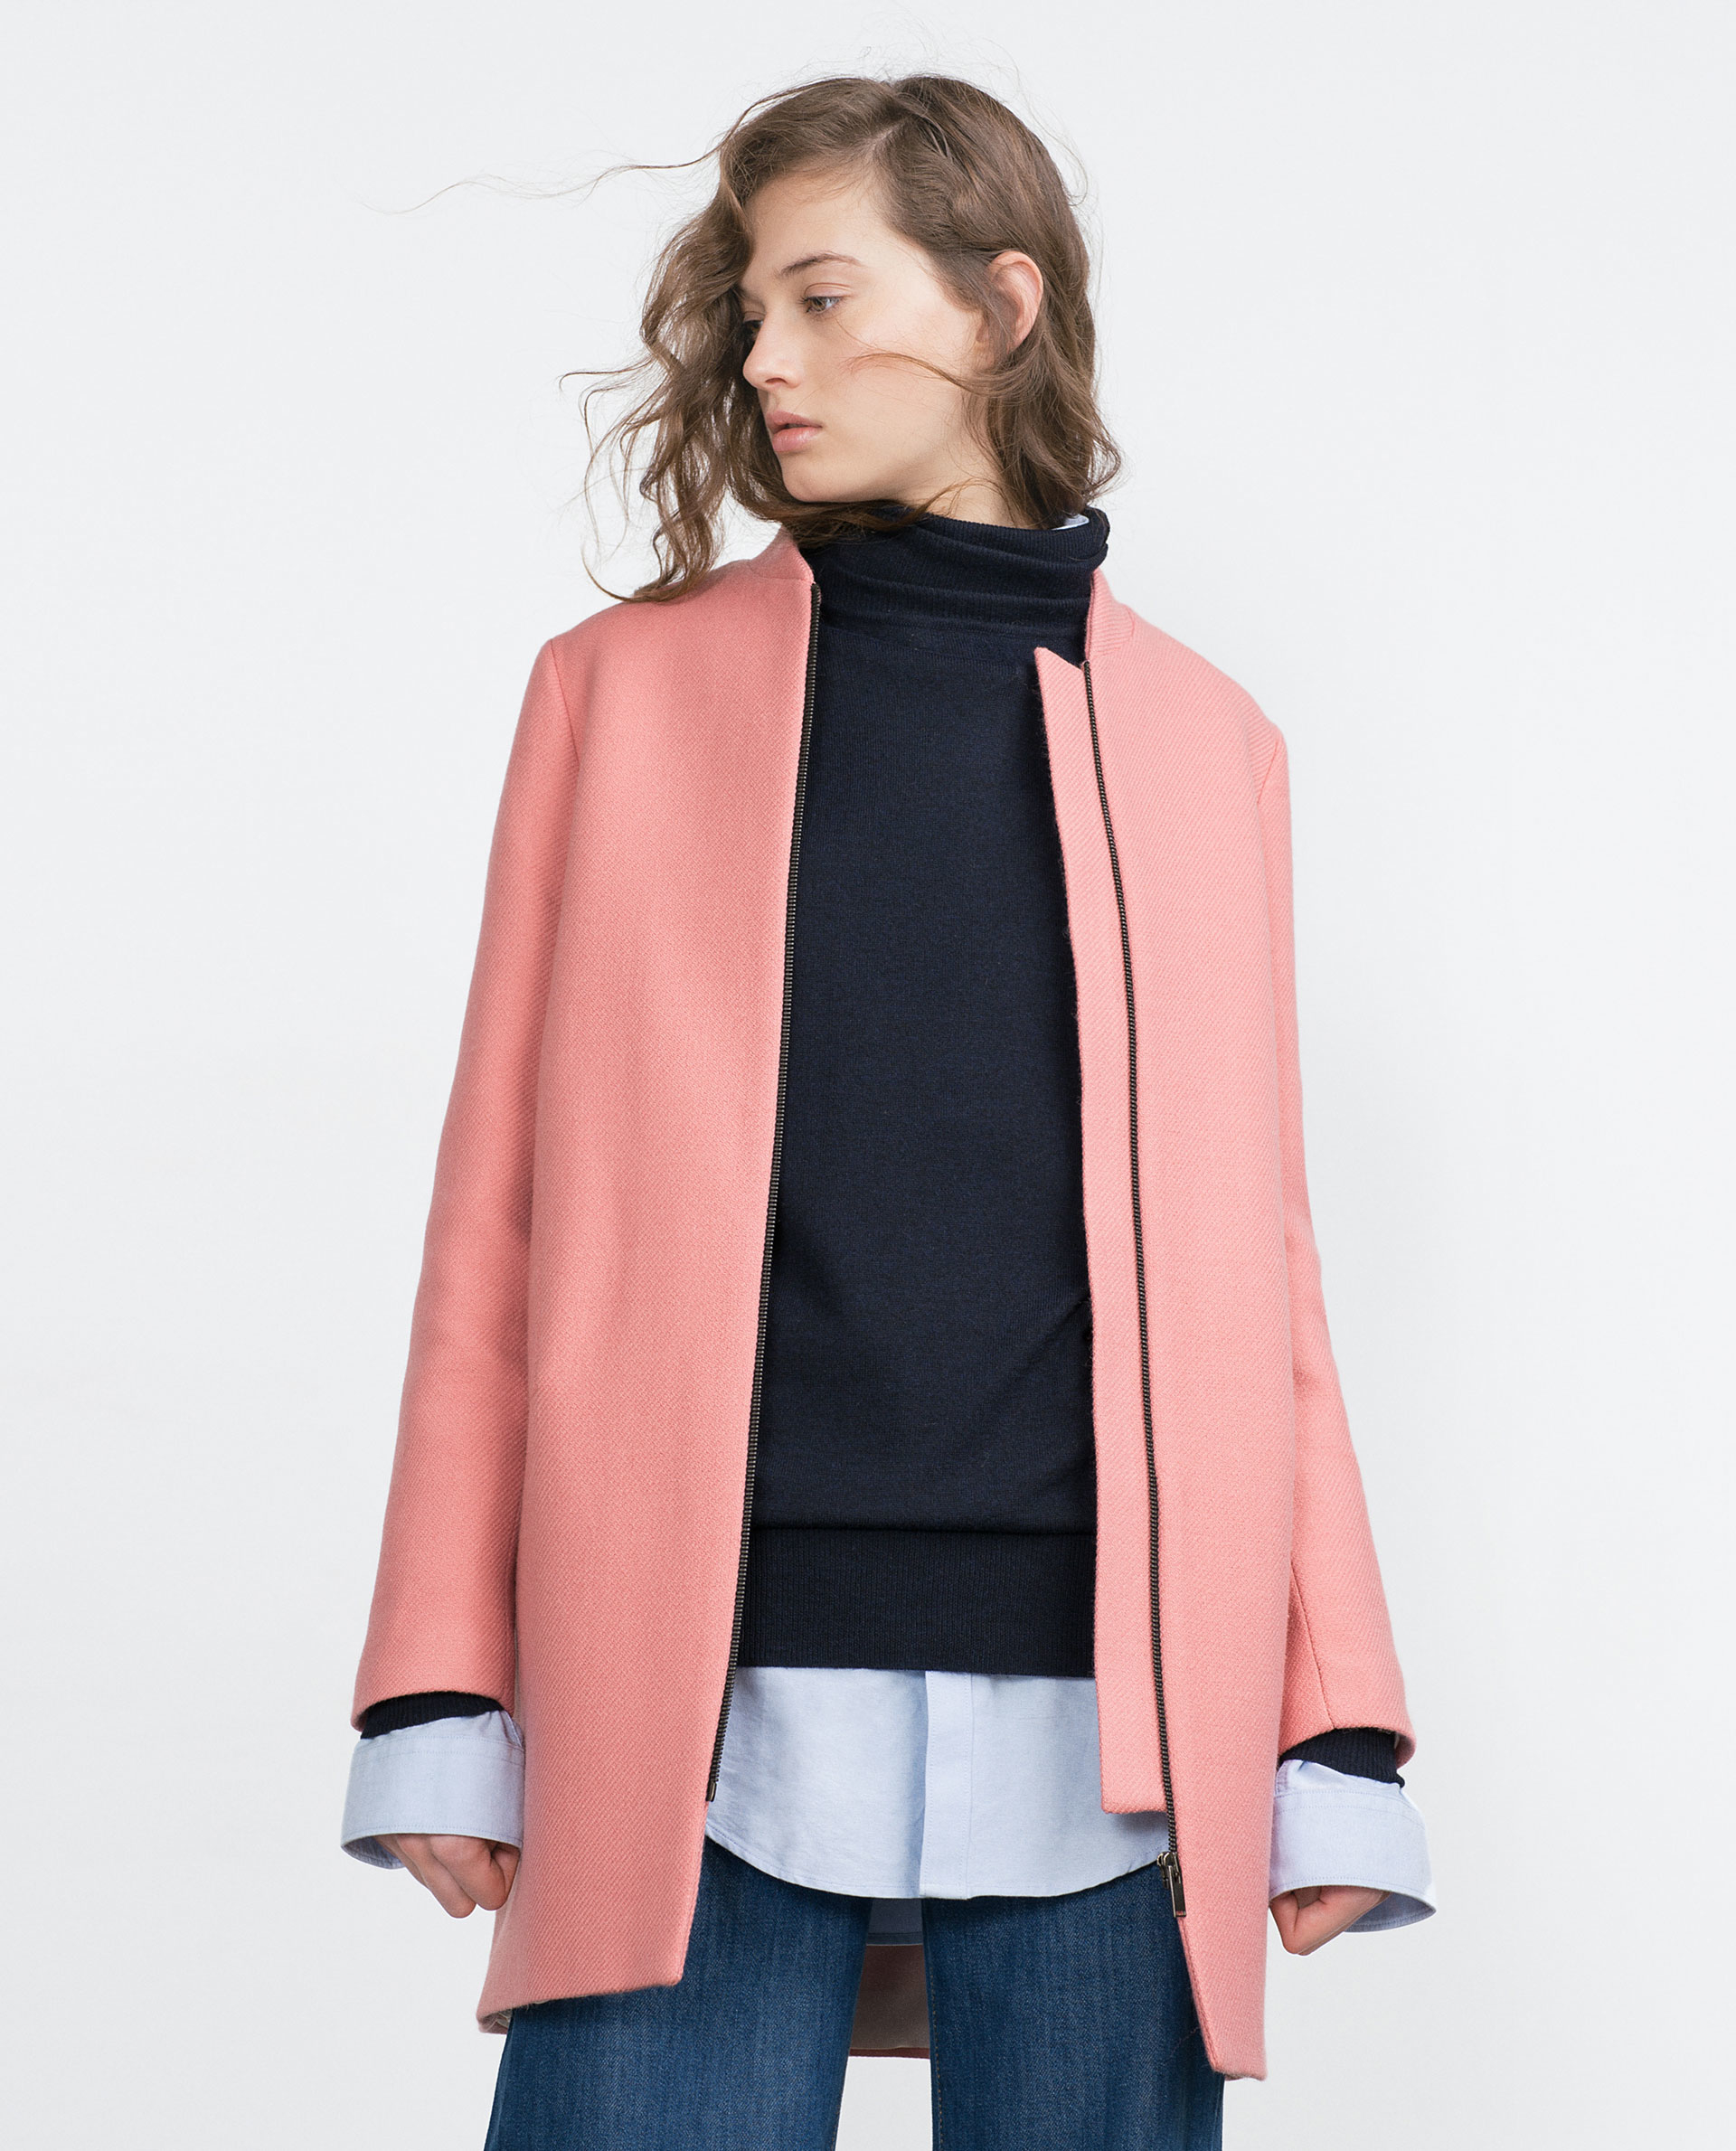 Add a dash of subtle colour to your wardrobe this season with delicate pink coats. Ranging from faux fur to parkas, the pastel hue complements most outfits.